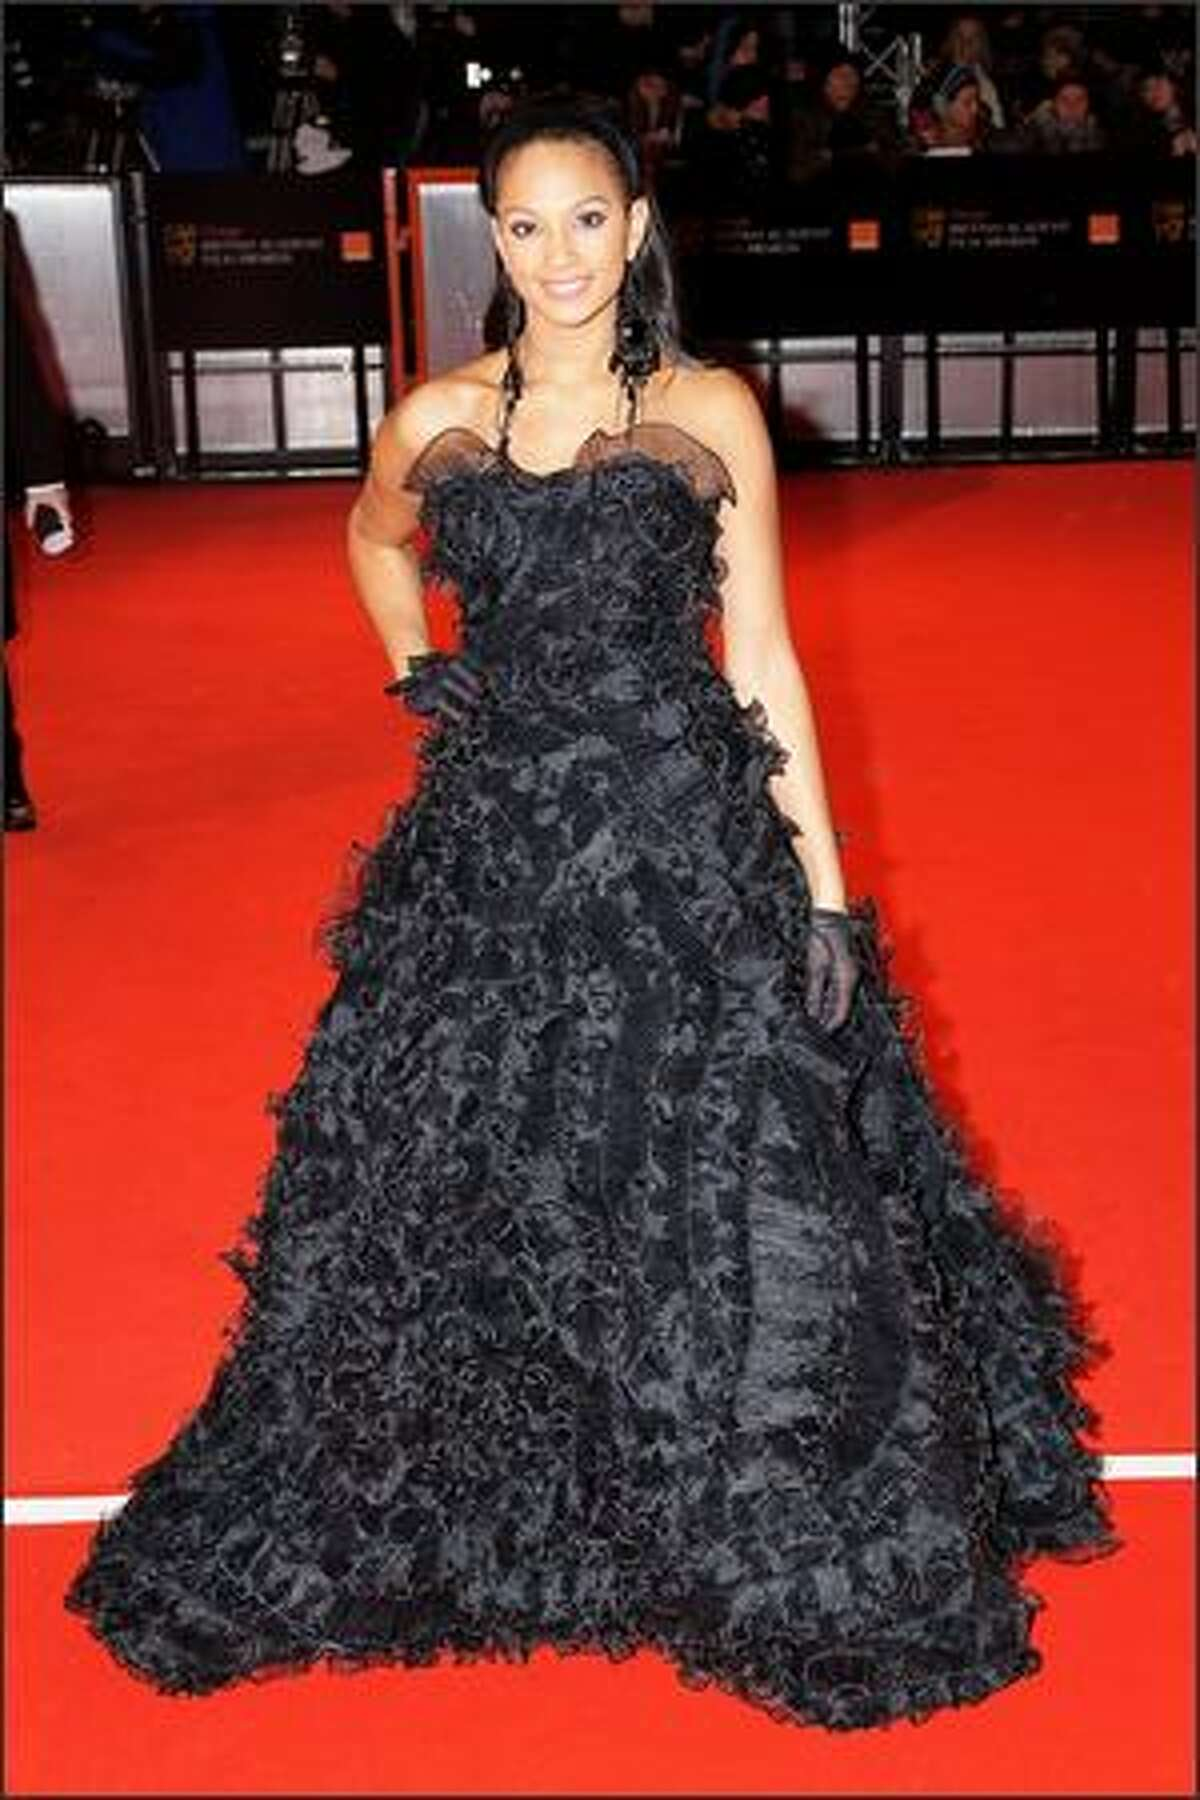 Alysha Dixon attends The Orange British Academy Film Awards at the Royal Opera House, Covent Garden, on Sunday in London.